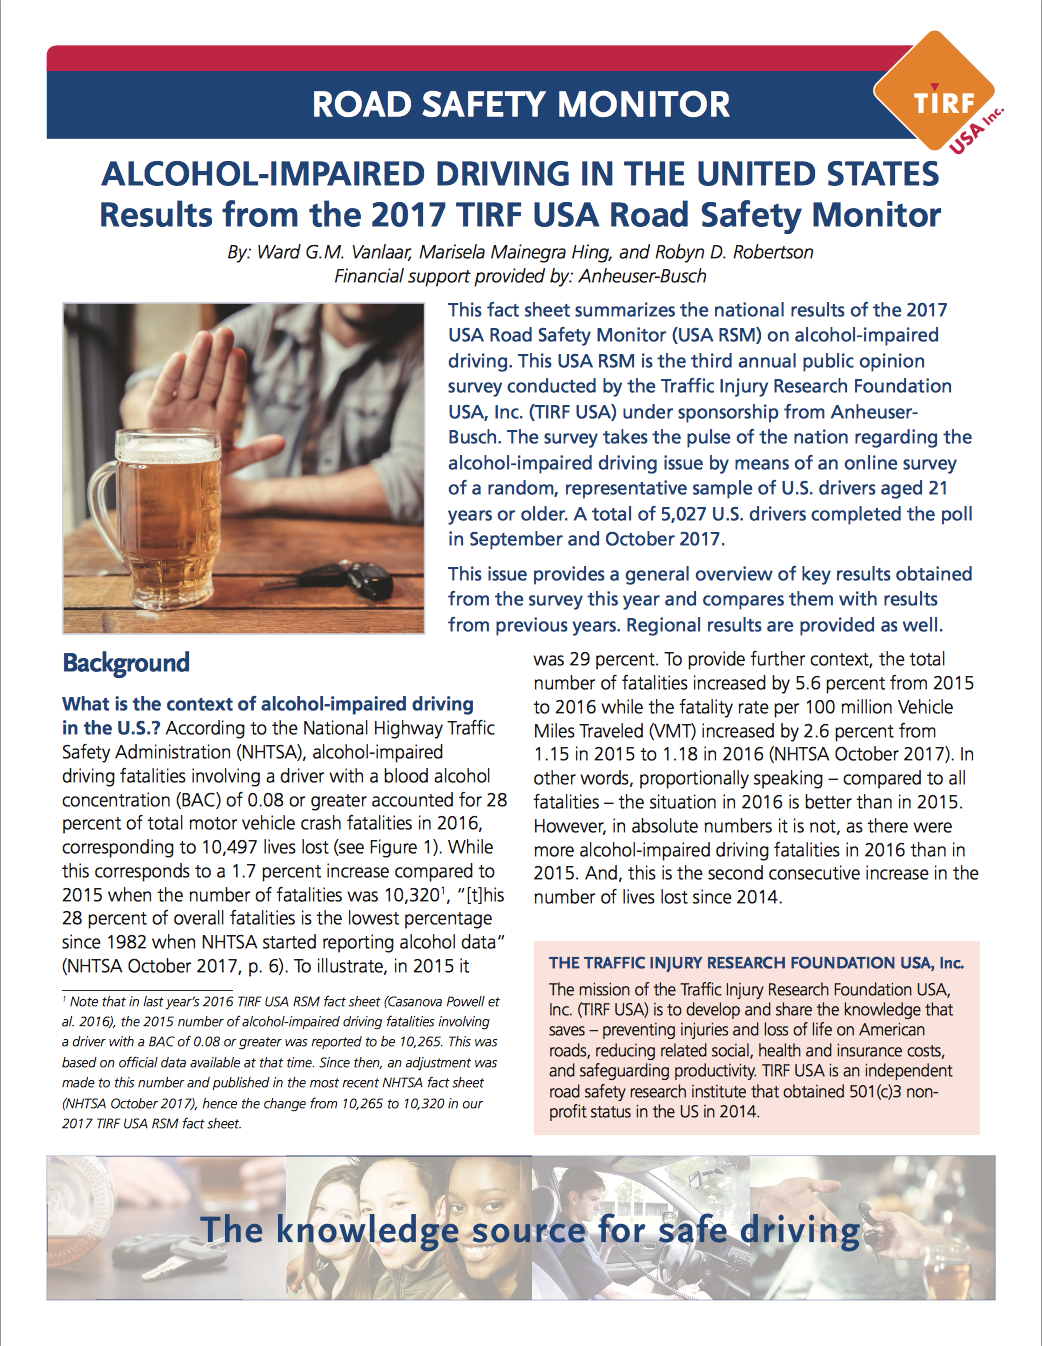 Road Safety Monitor: Alcohol-Impaired Driving in the United States, 2017